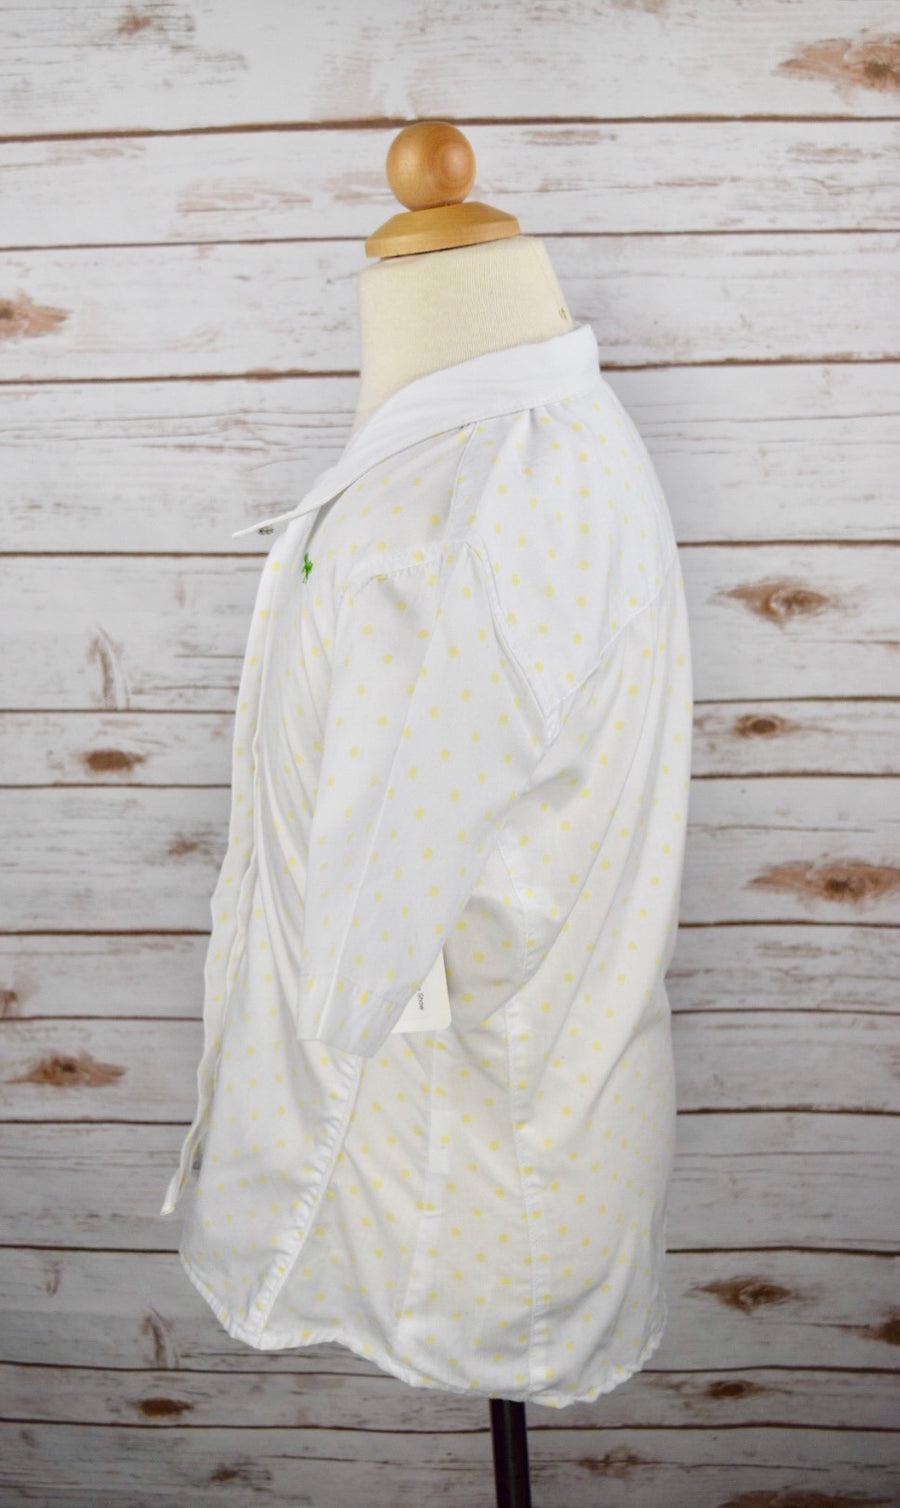 Clever Human Short Sleeve Show Shirt in White /Yellow Polka Dot -  Left Side View